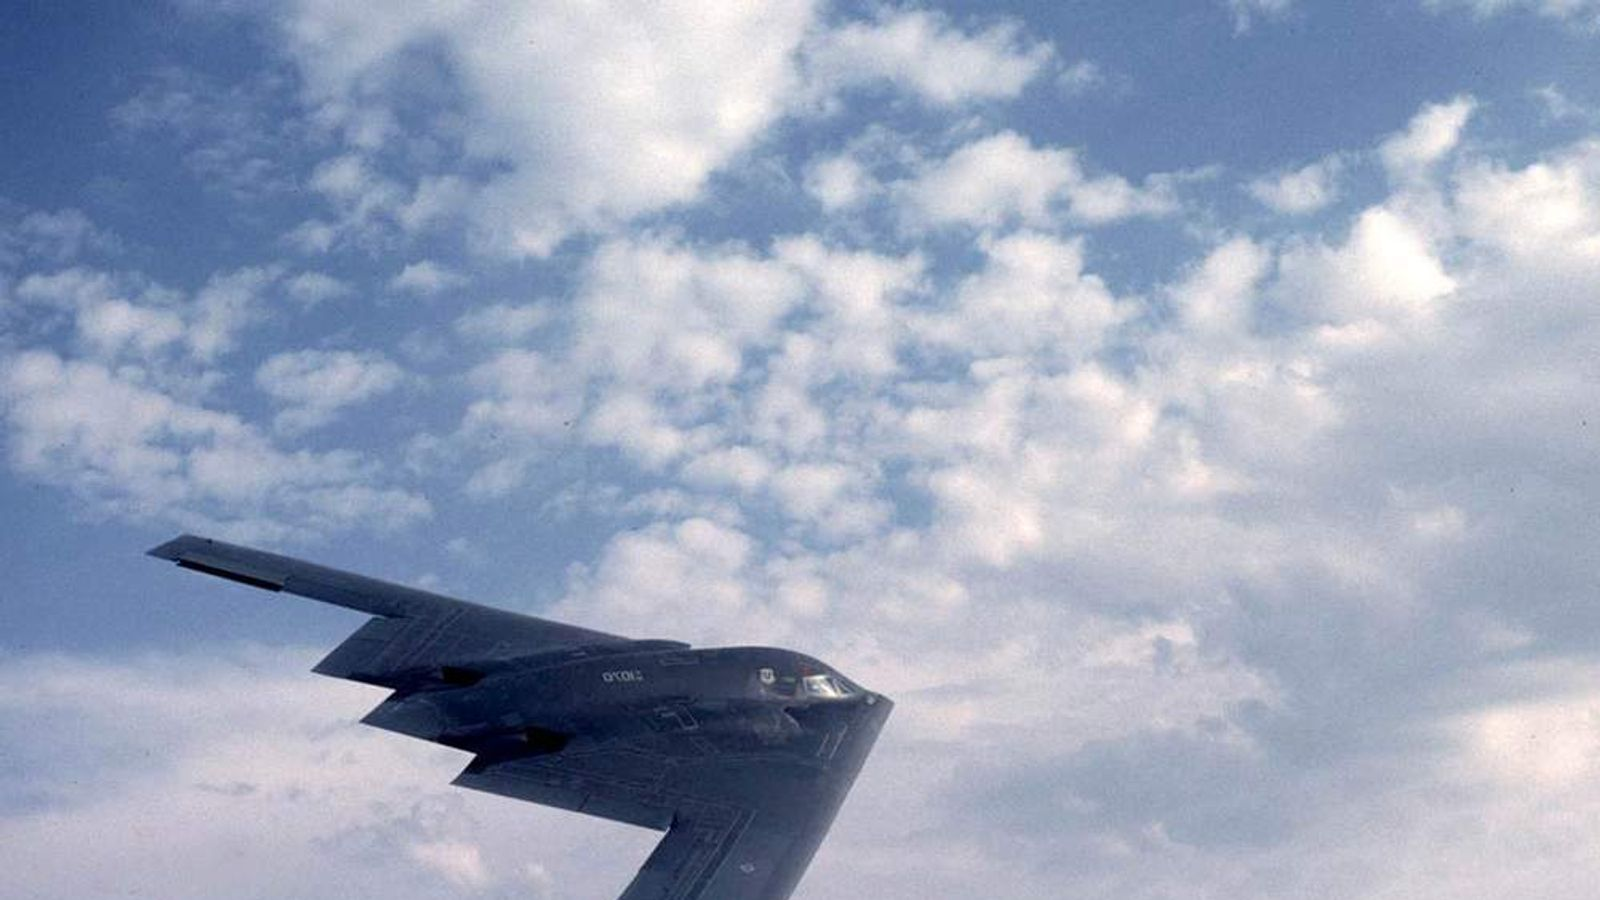 One of the U.S. Air Force's B-2 bombers